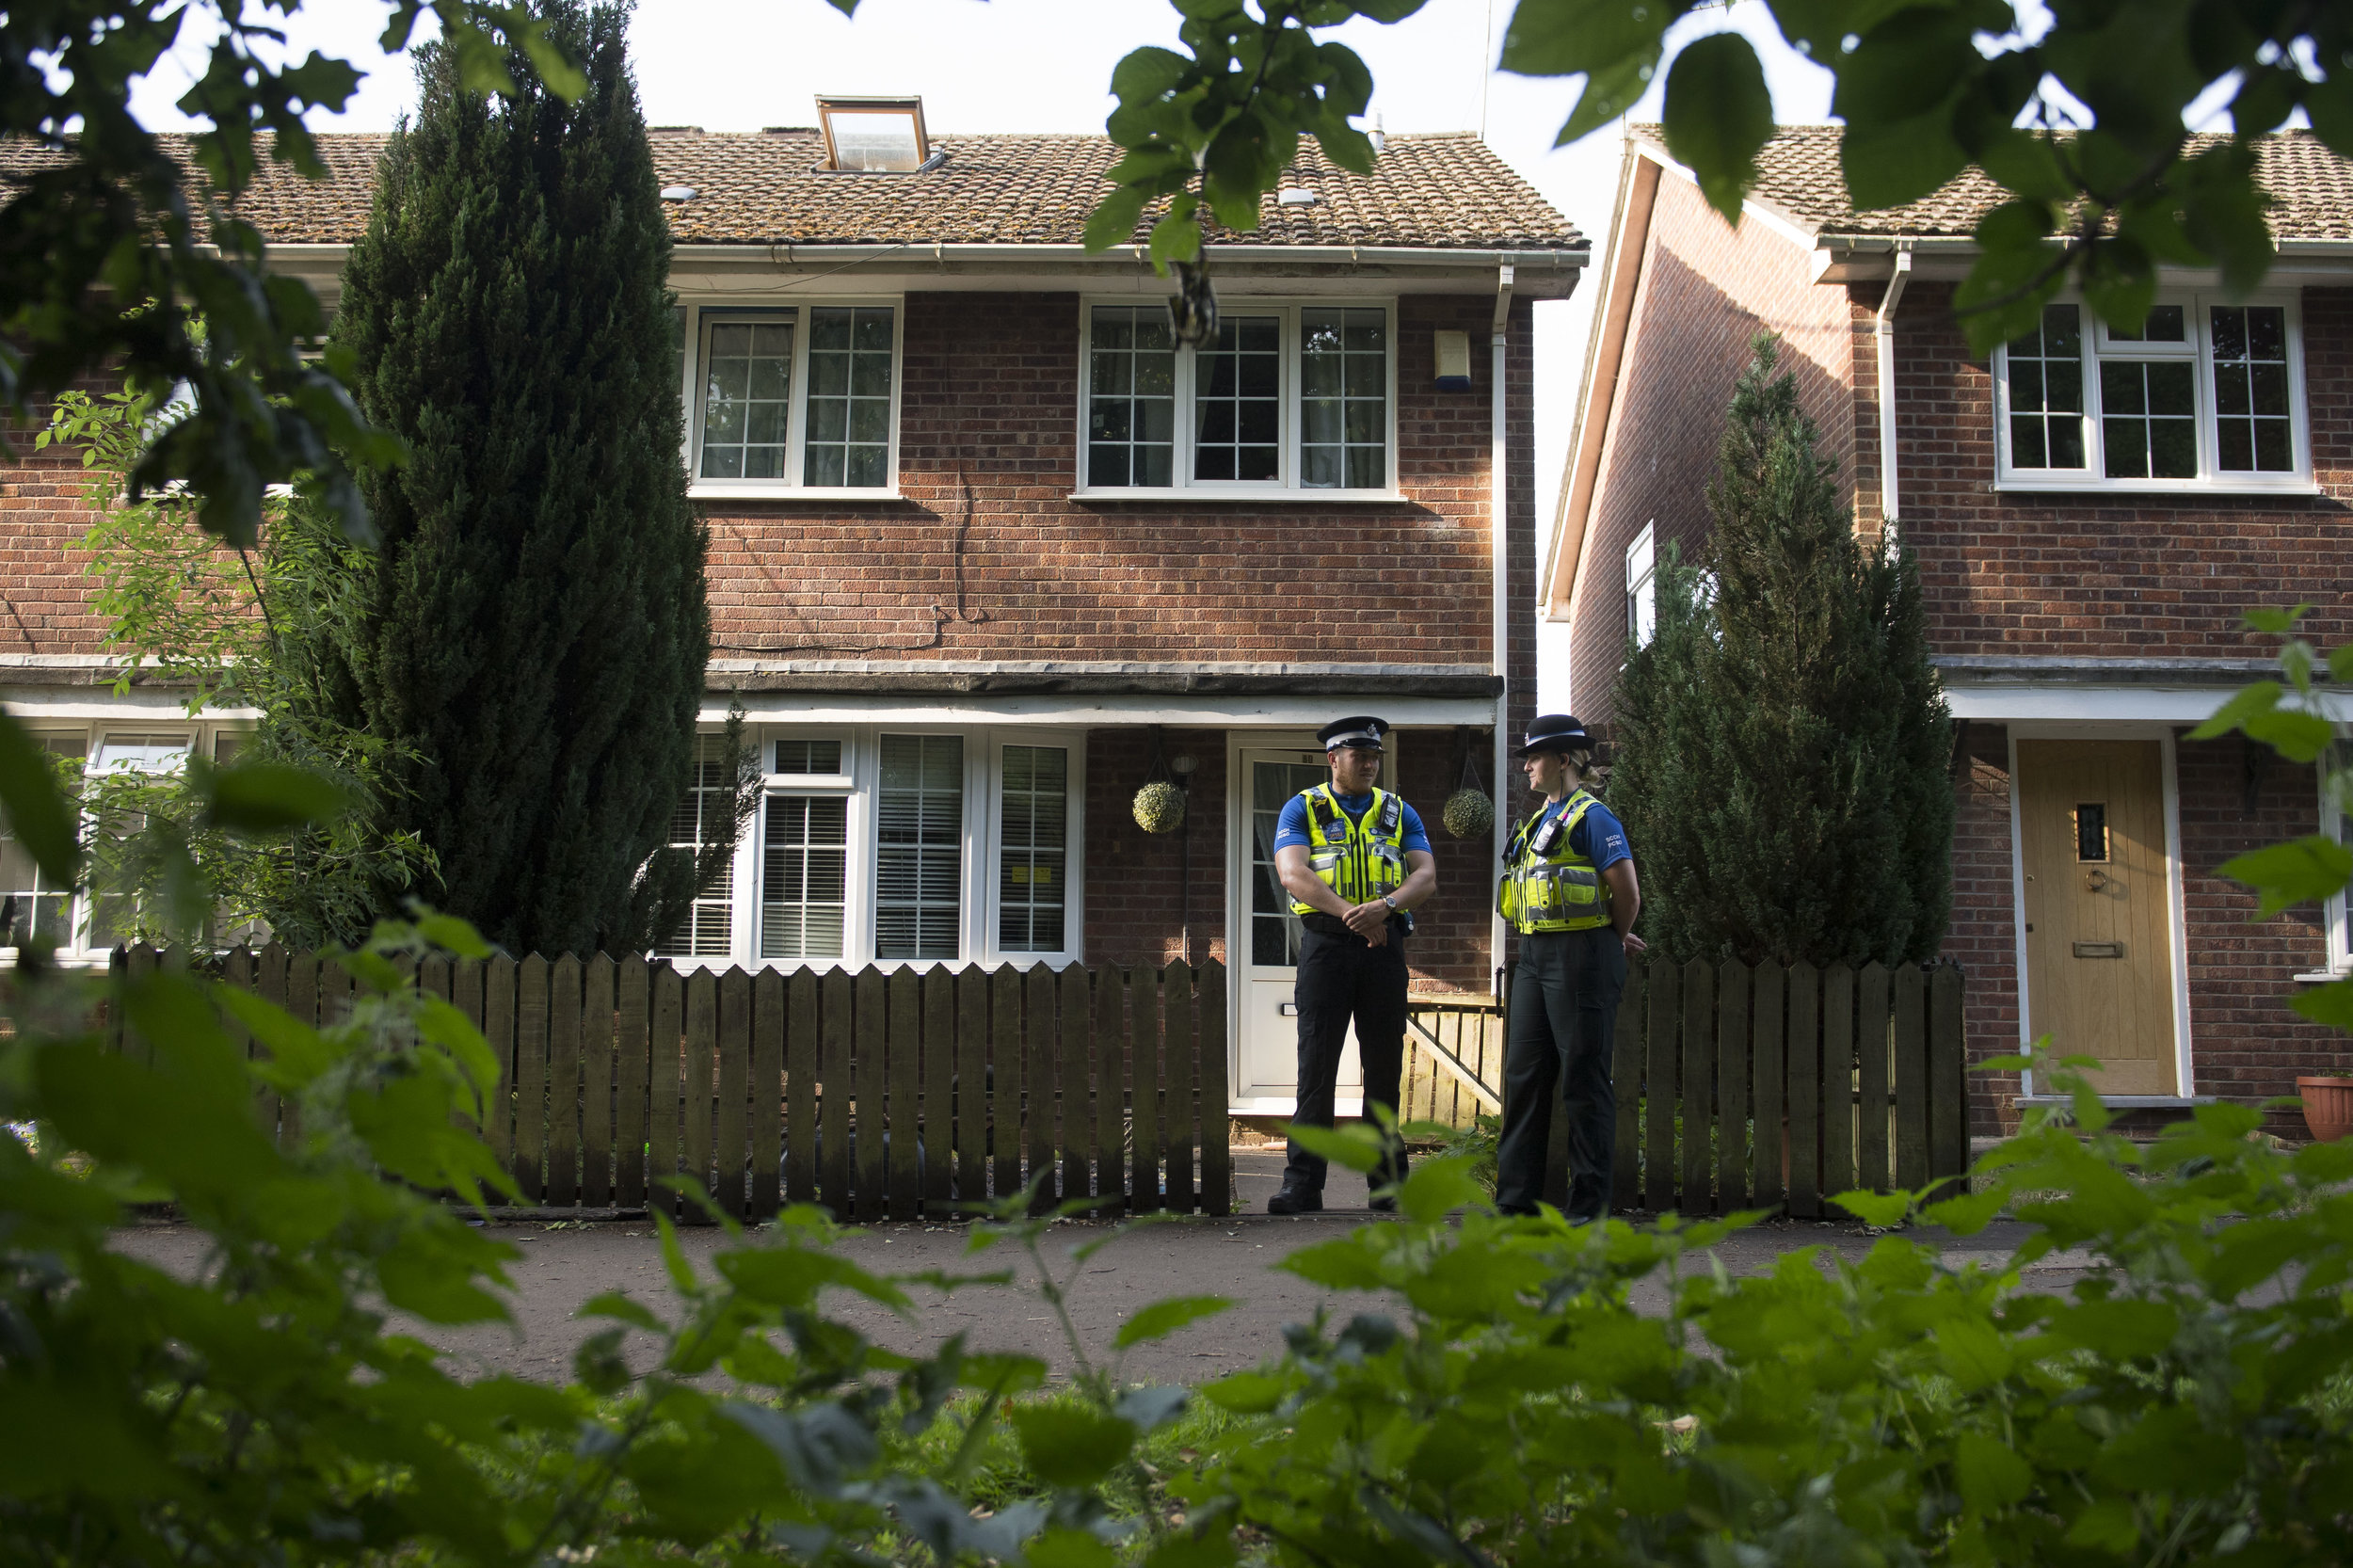 CARDIFF, WALES - JUNE 19: Two PCSOs stand outside a property during a search of a house on Glyn Rhosyn, Pentwyn, which is believed to be the home of Darren Osborne, who has been named as the man responsible for the Finsbury Park Mosque attack, on June 19, 2017 in Cardiff, Wales. A van ploughed into pedestrians near Finsbury Park Mosque on Severn Sisters Road, North London, at around 12.20 this morning. Police have reported that eight people were injured and one killed. A 48-year-old man has been arrested. Prime Minister Theresa May has said police are treating it as a potential terrorist incident. (Photo by Matthew Horwood/Getty Images)